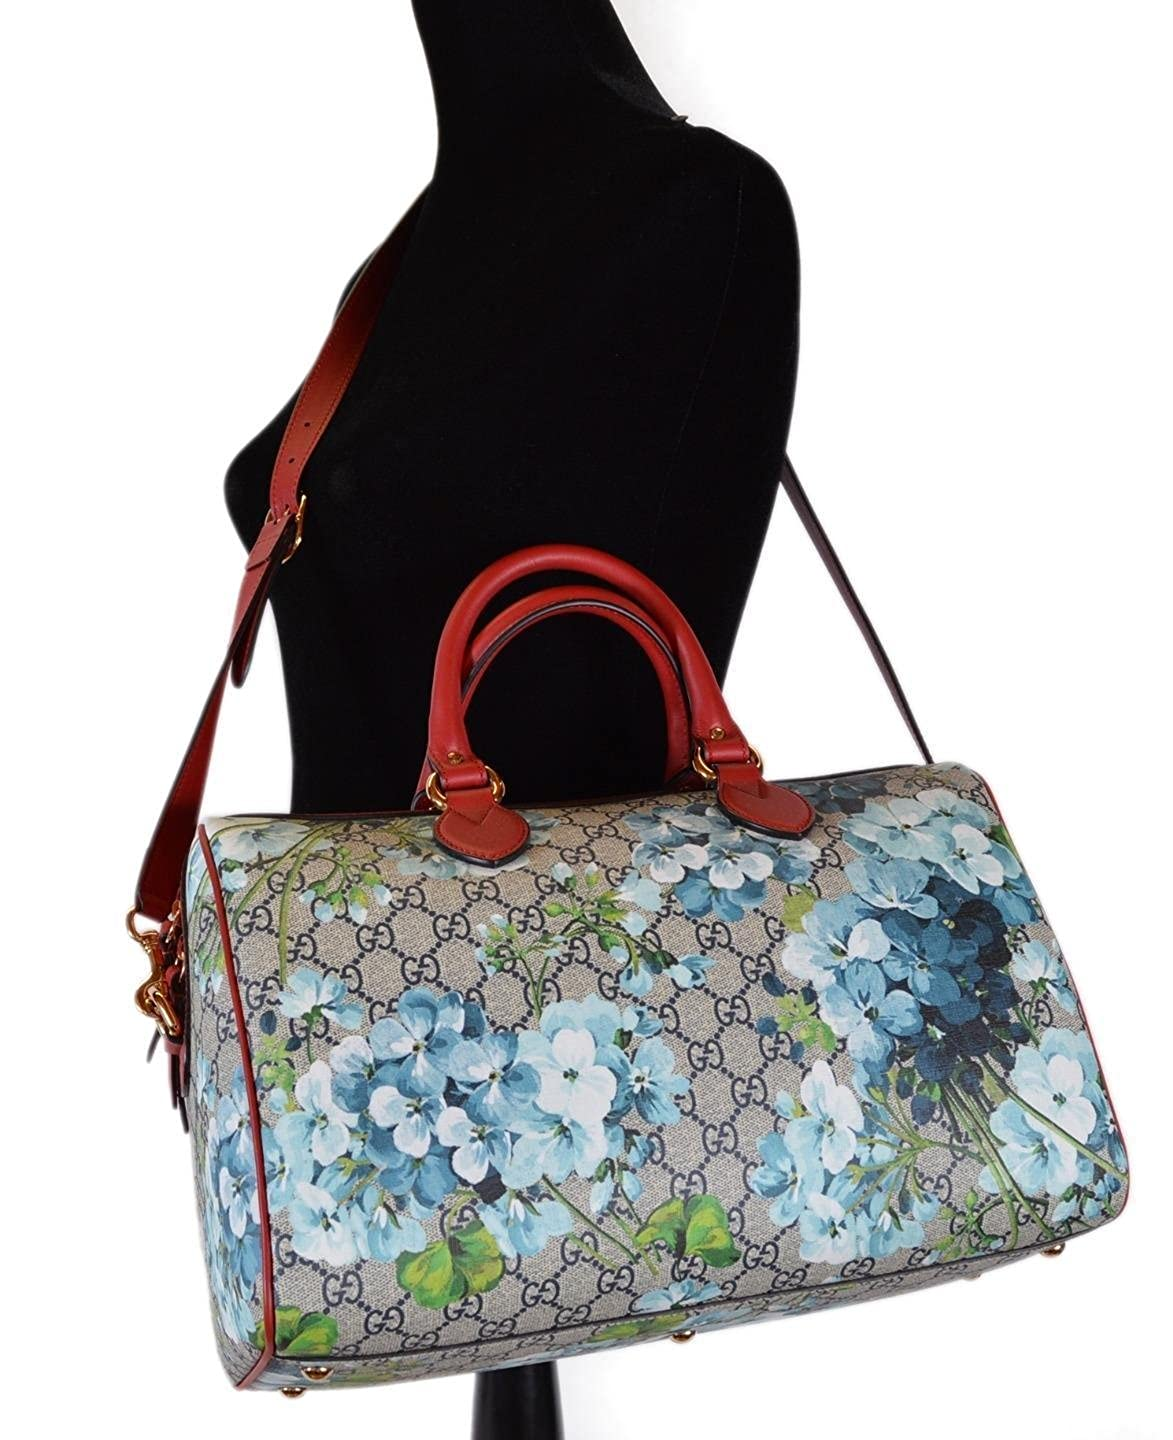 51c02dfdef46be Amazon.com: Gucci Women's GG Supreme BLOOMS Convertible Boston Bag: Shoes